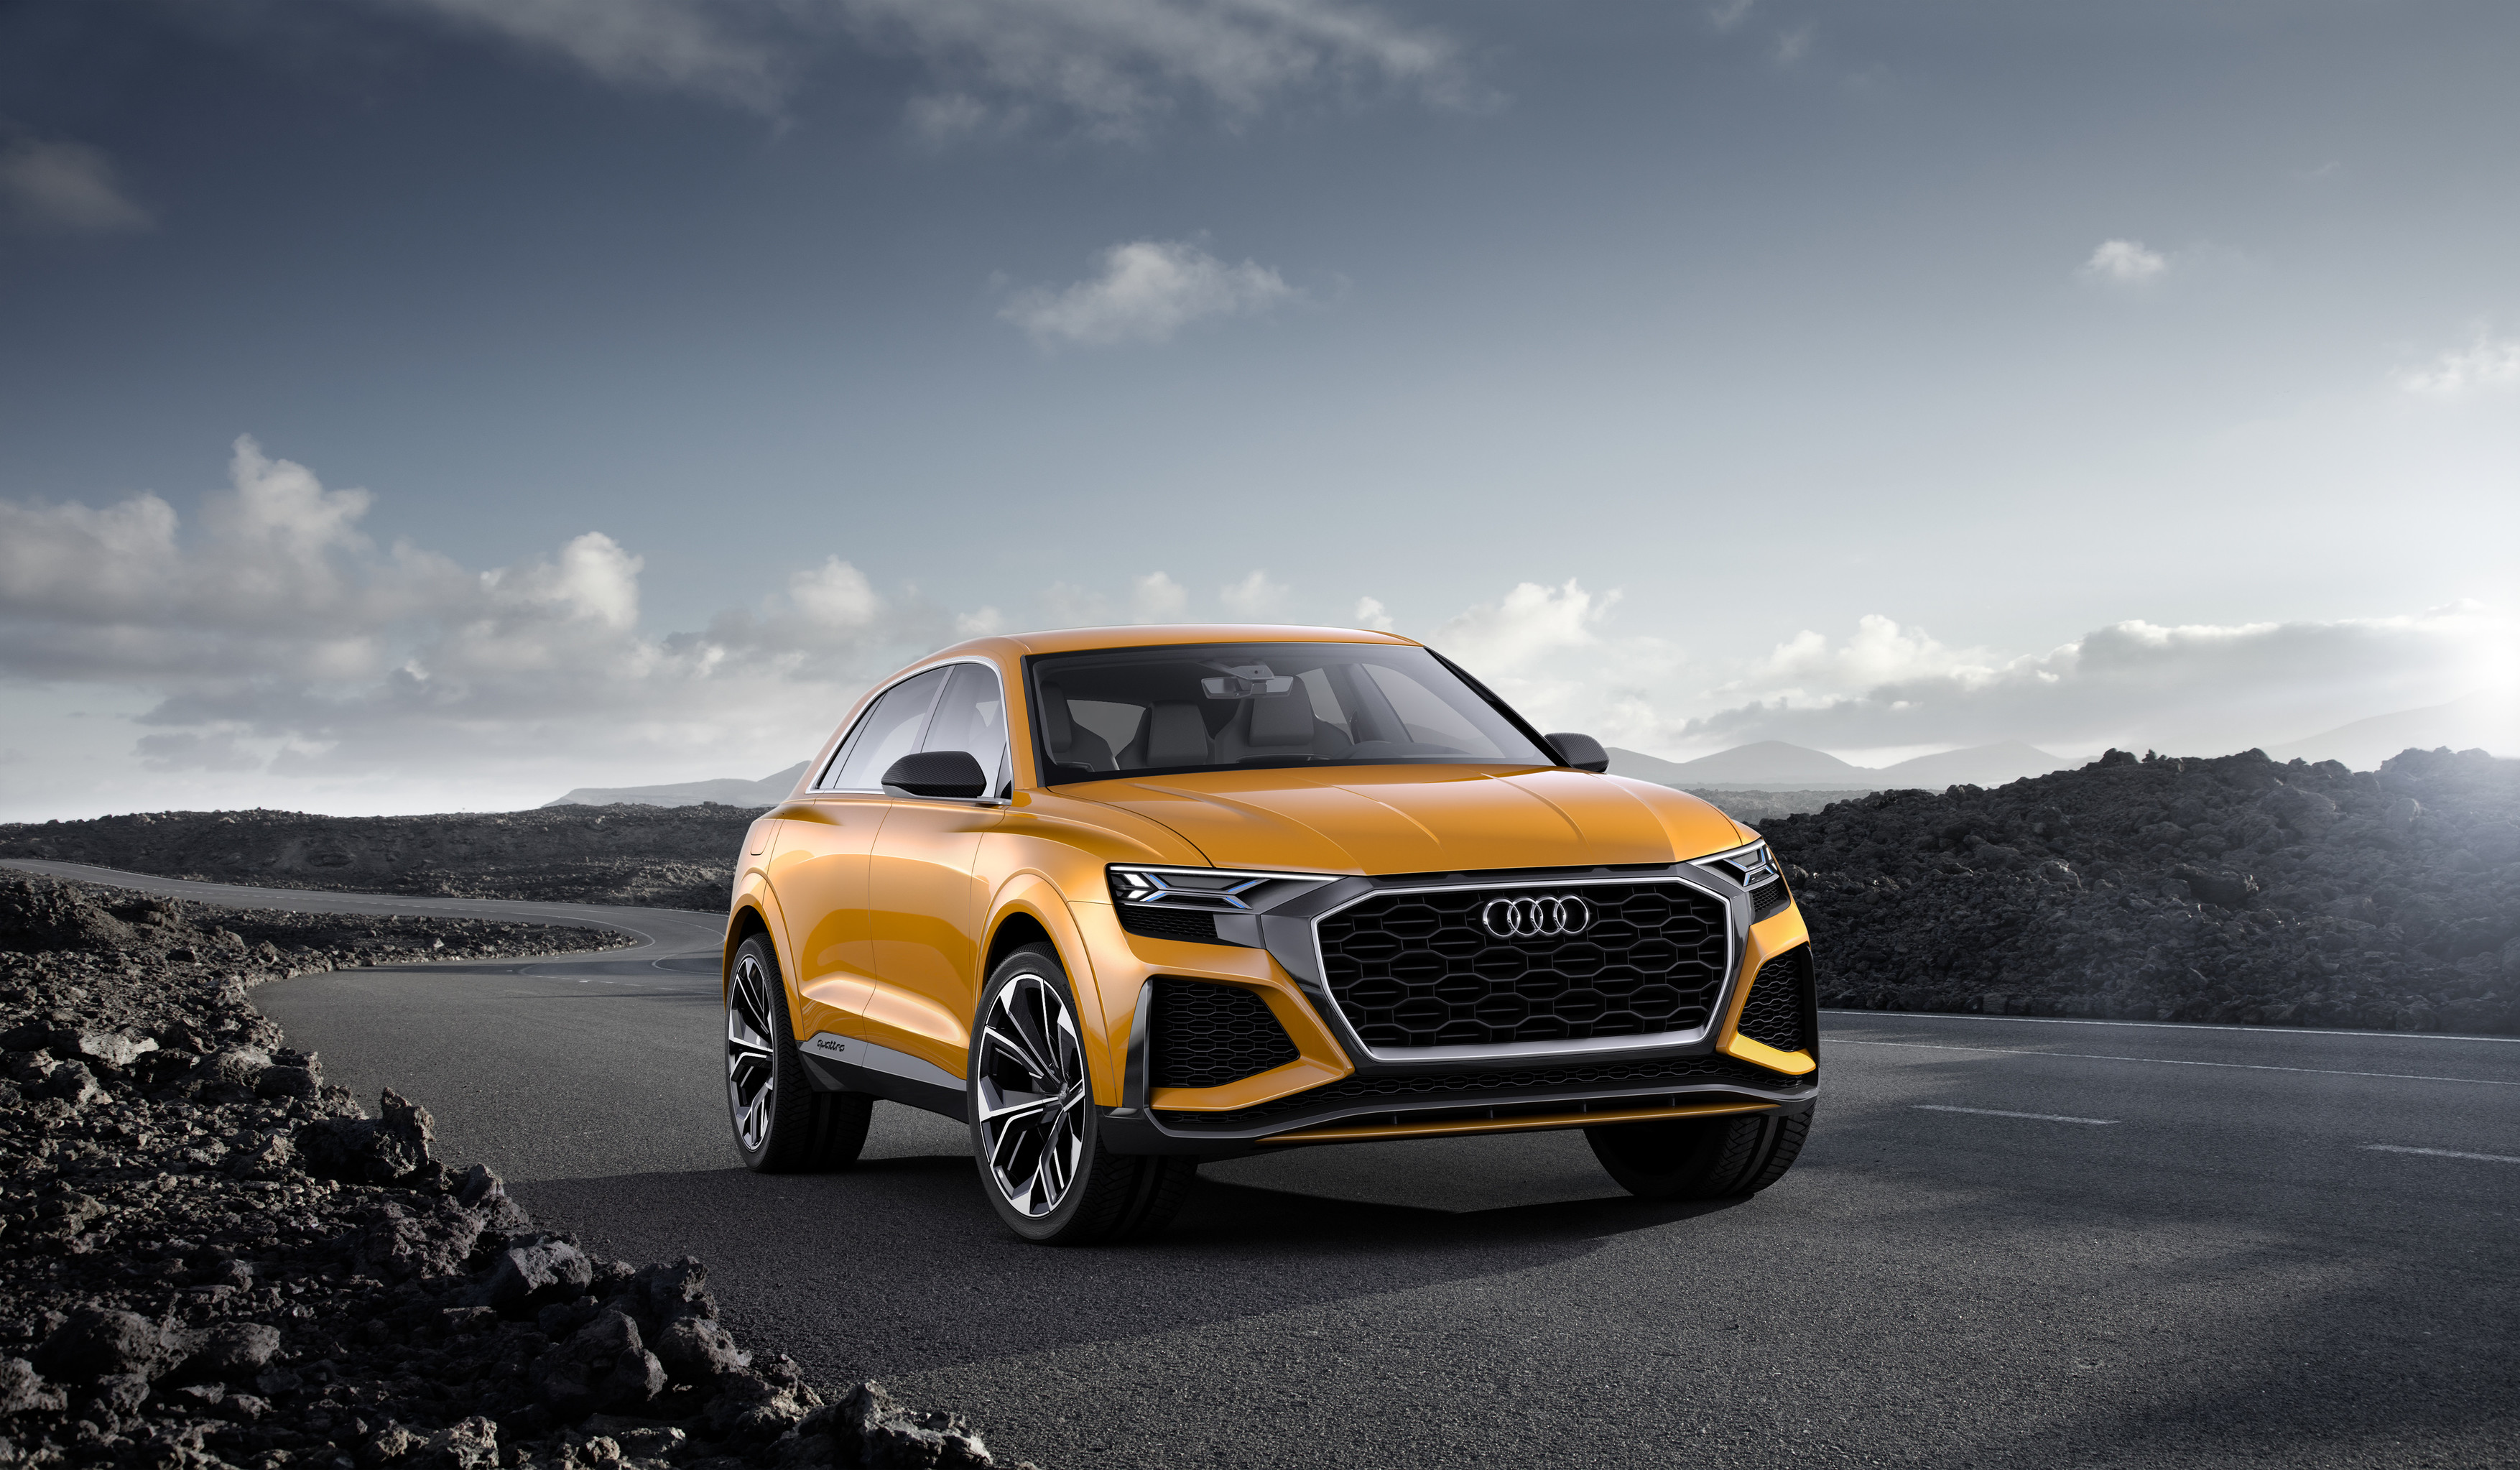 New SUV Audi Q8 to be produced in Bratislava